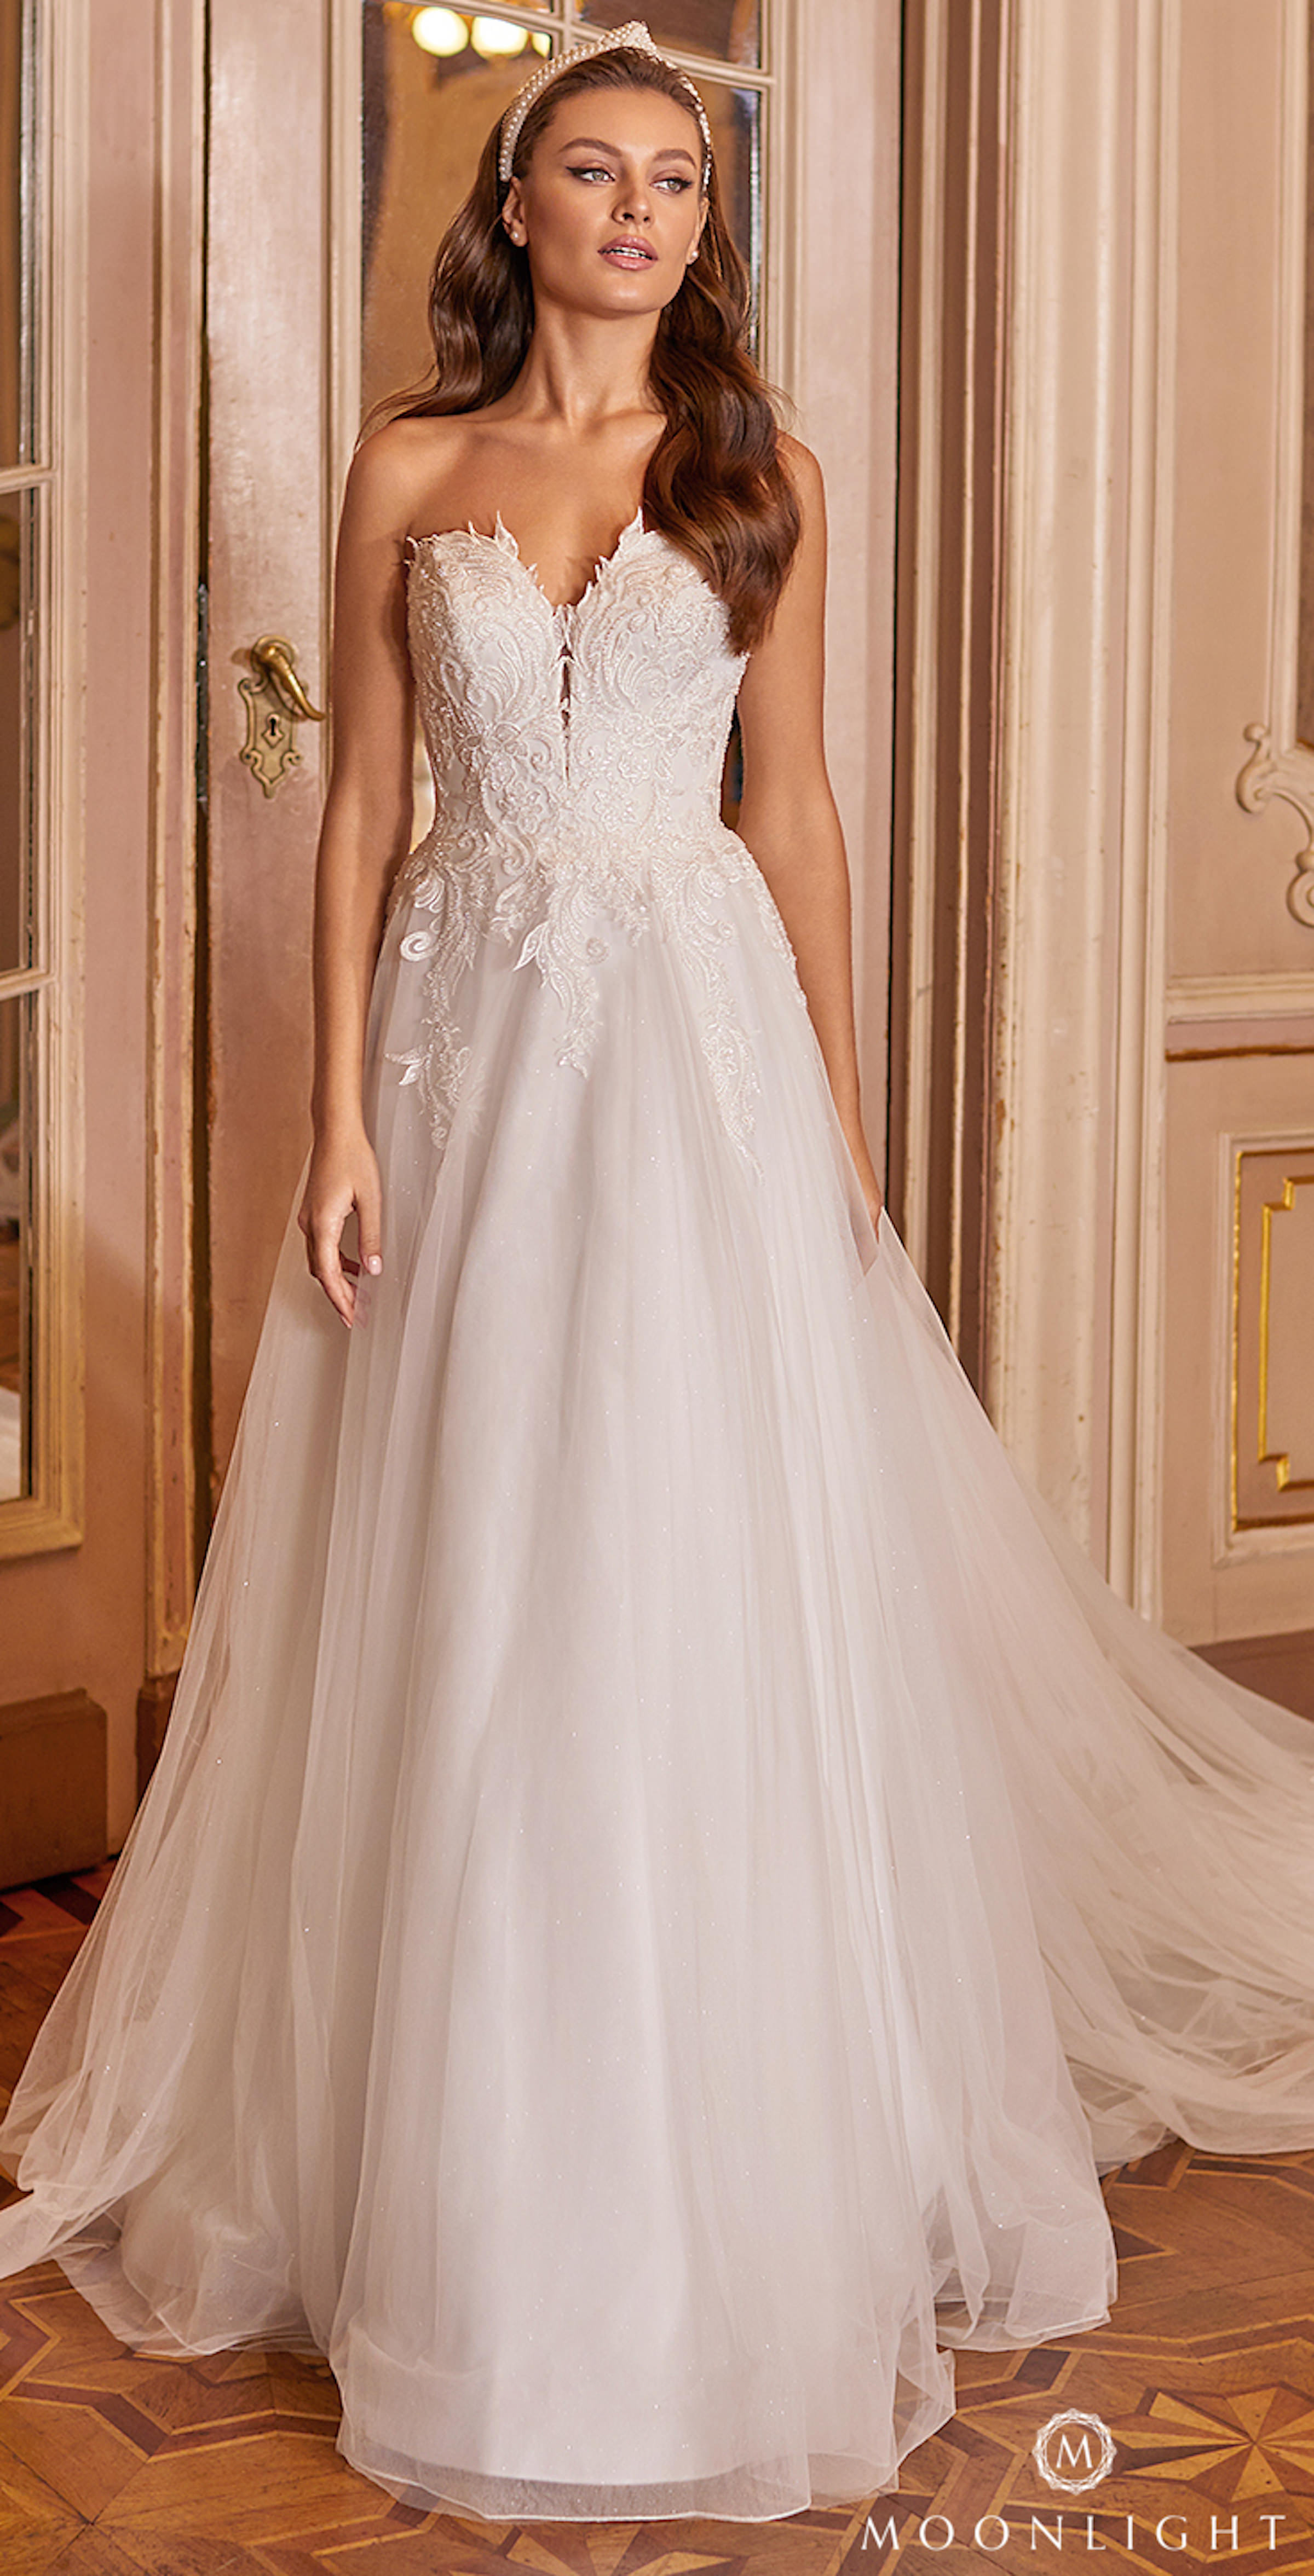 Gilded X Moonlight Collection Fall 2021 Wedding Dresses - J6827